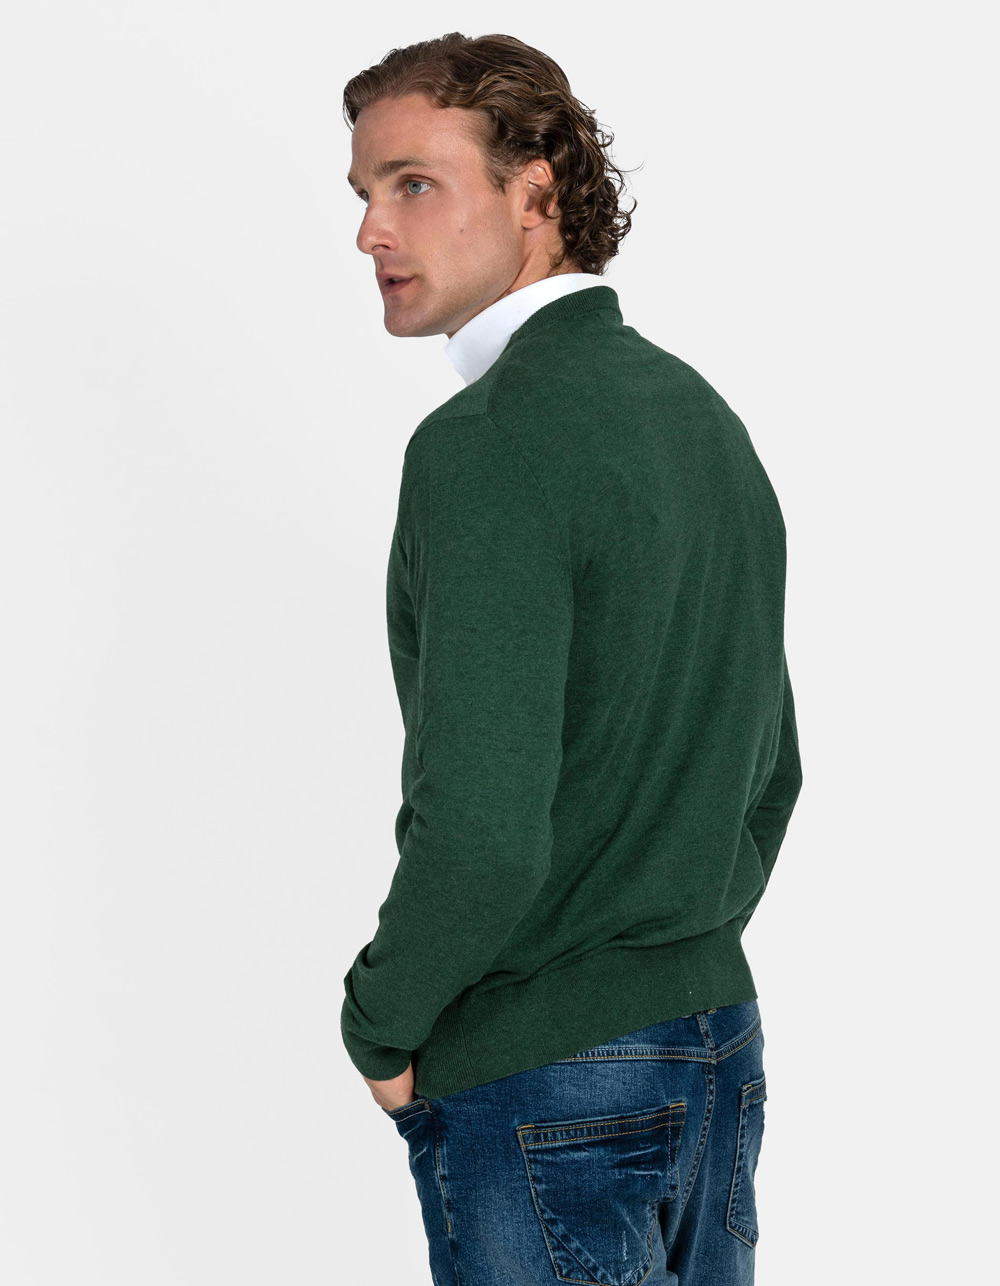 Green crew neck sweater - Backside